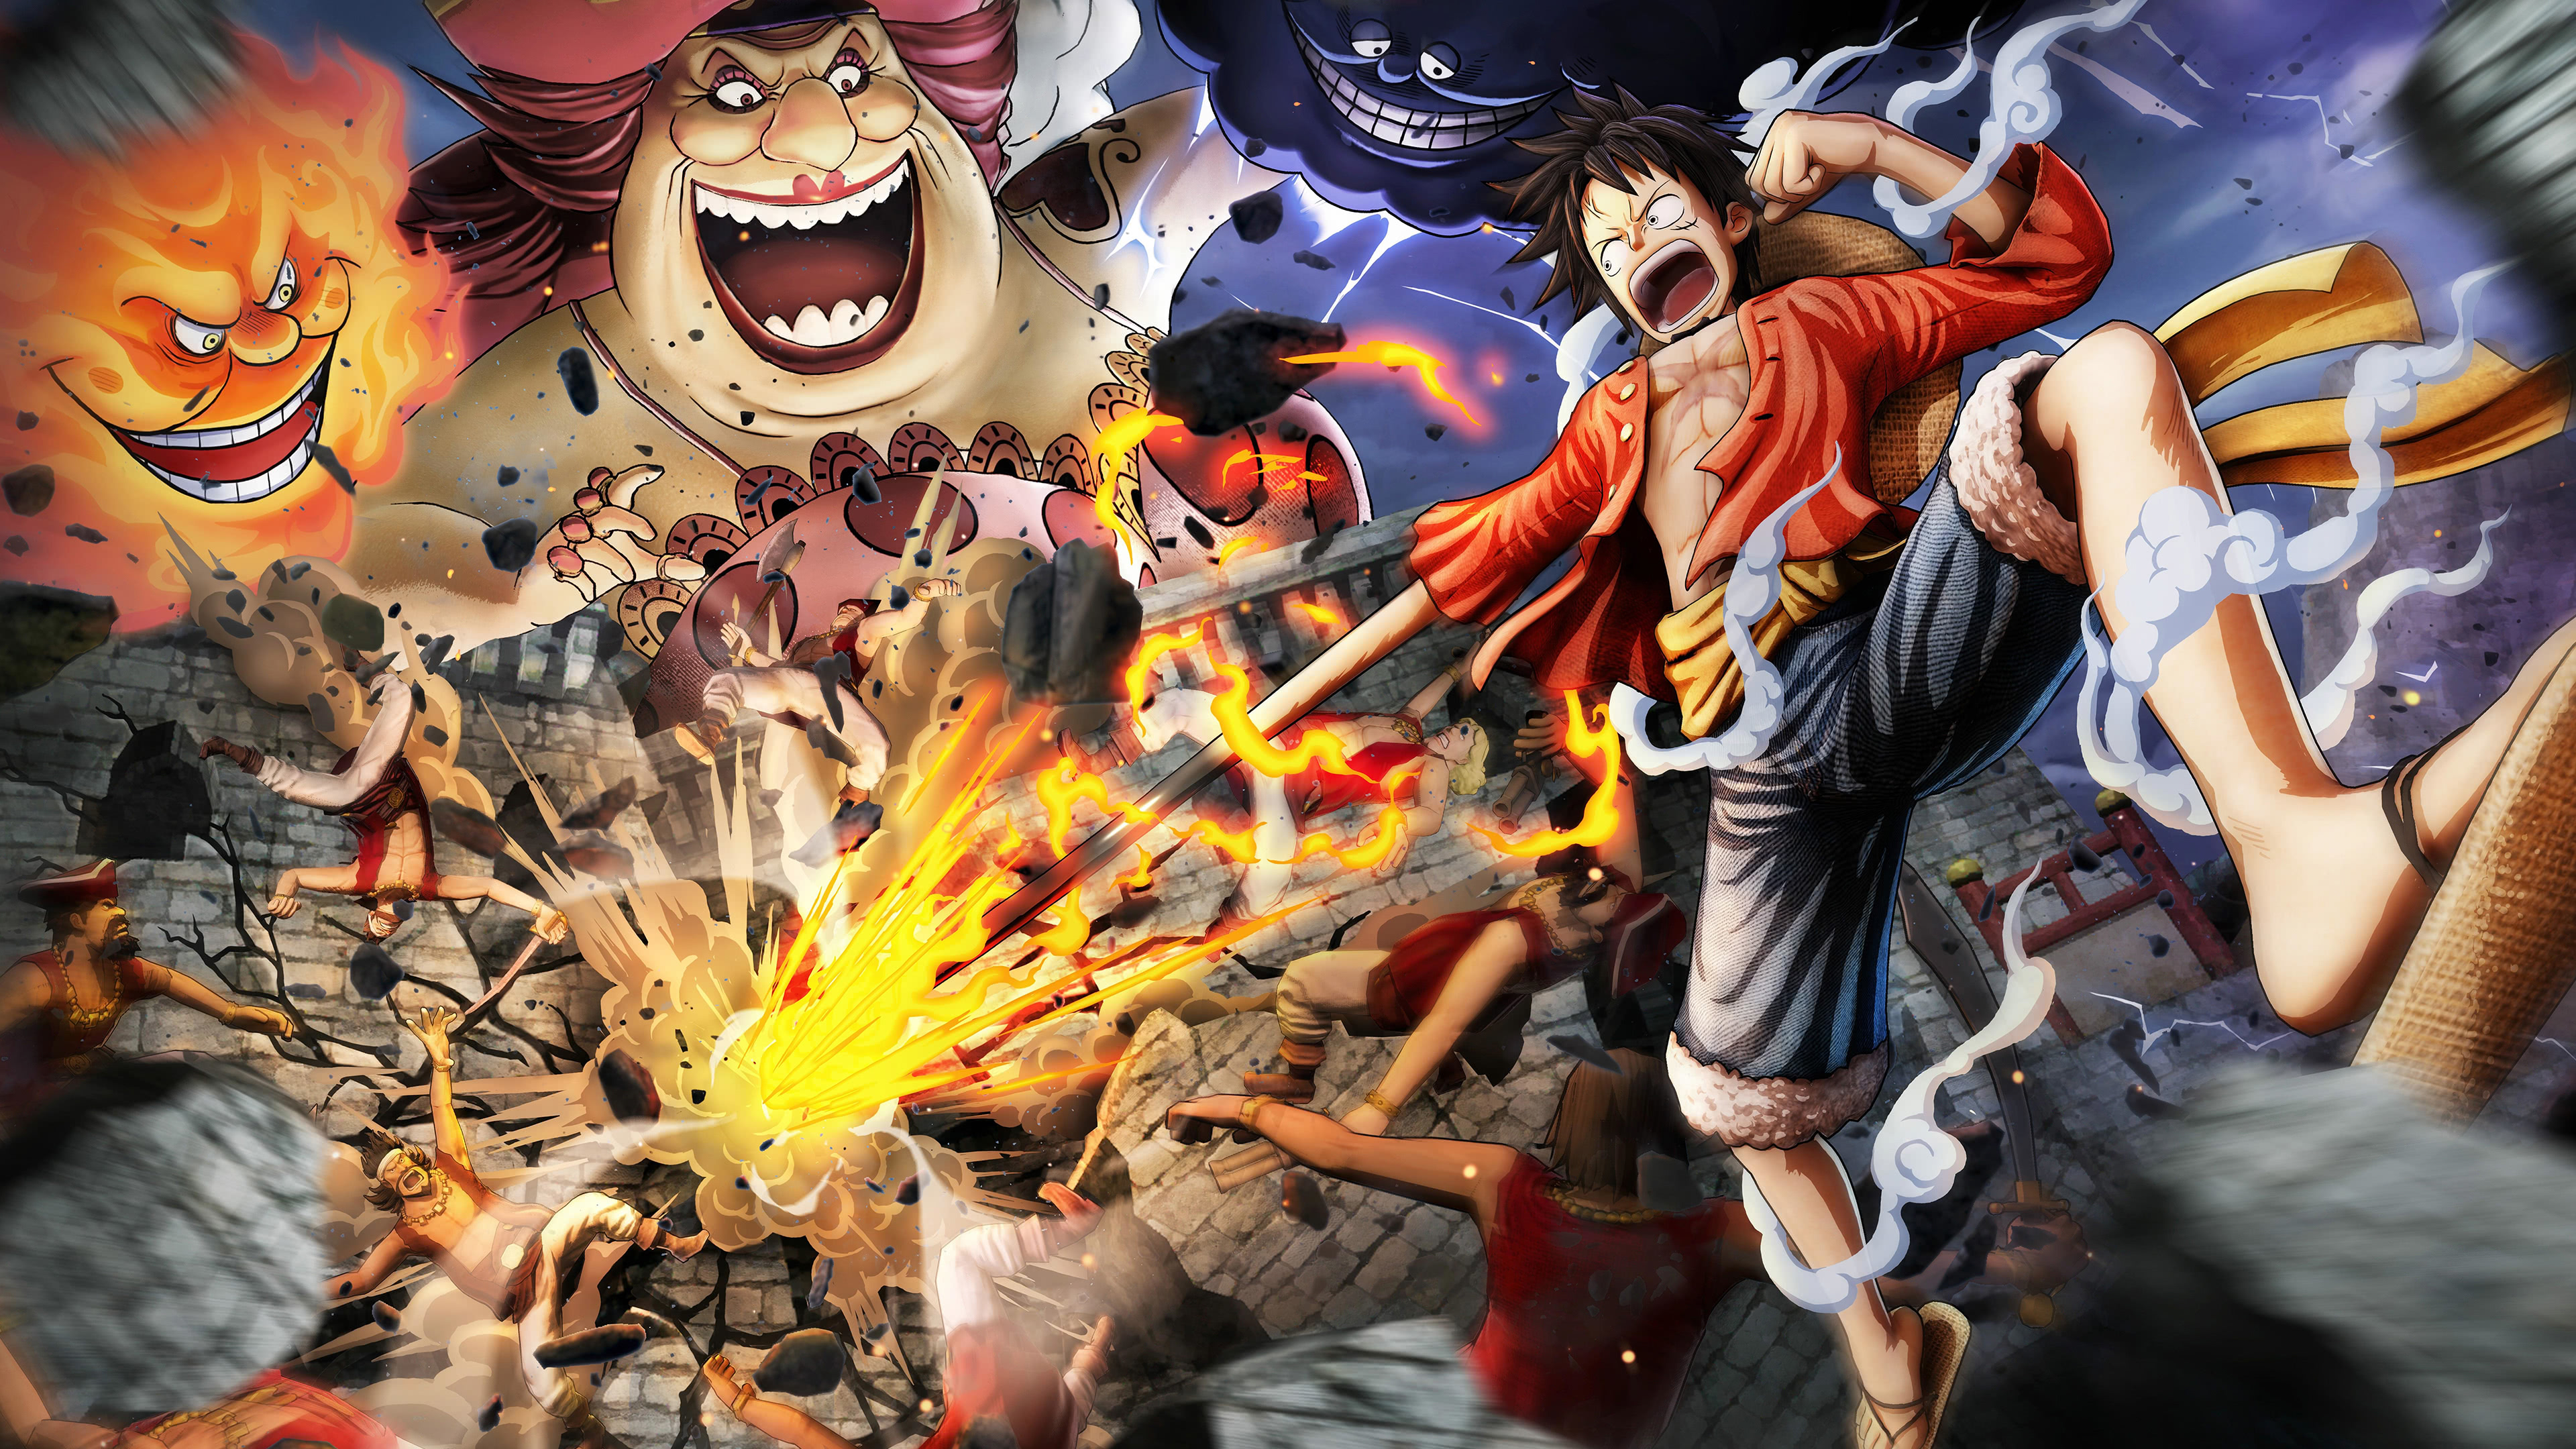 One Piece Pirate Warriors Uhd 4k Wallpaper One Piece Wallpaper 4k 3840x2160 Wallpaper Teahub Io